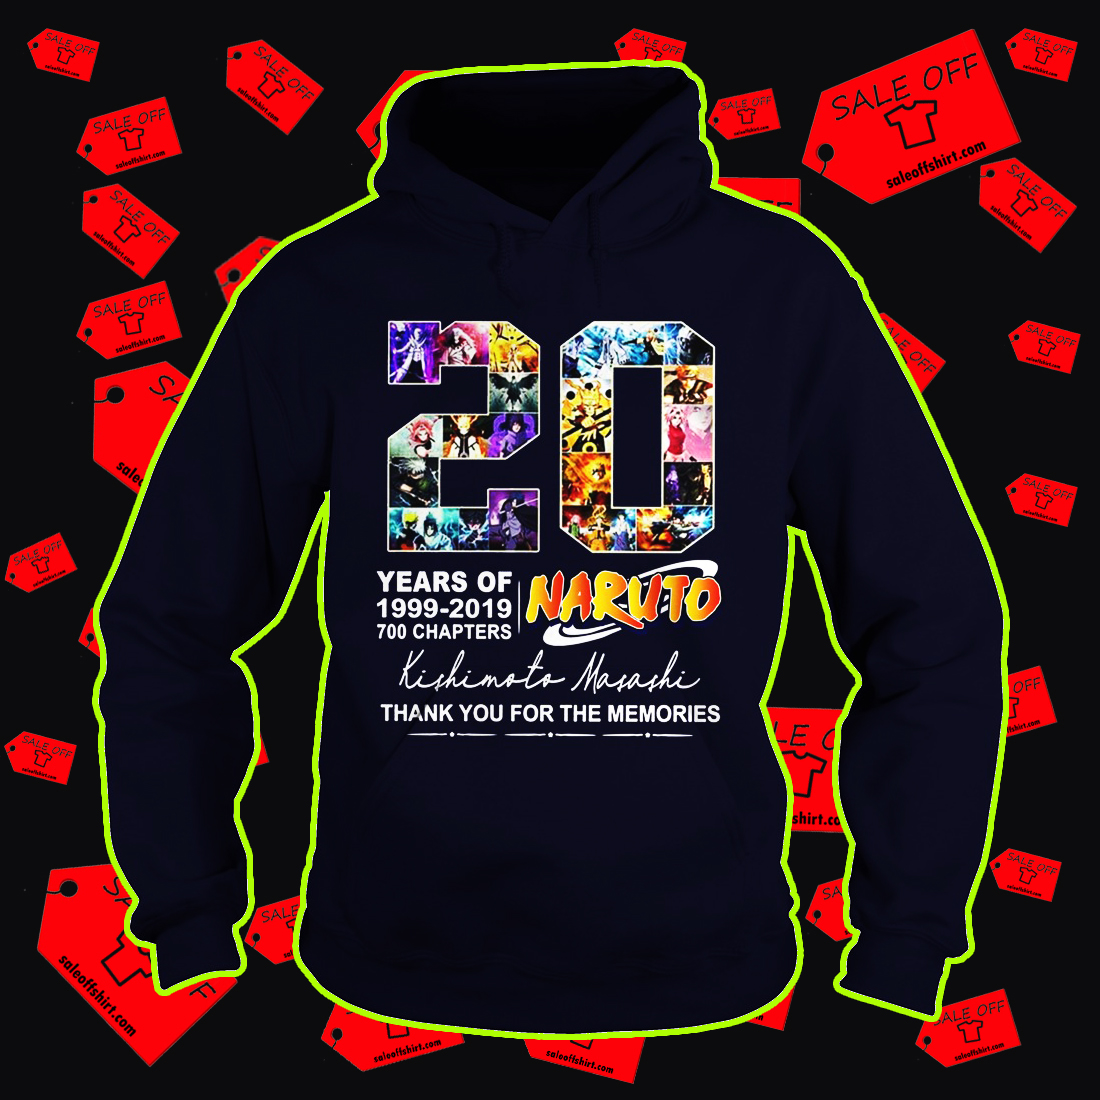 20 years of Naruto thank you for the memories hoodie